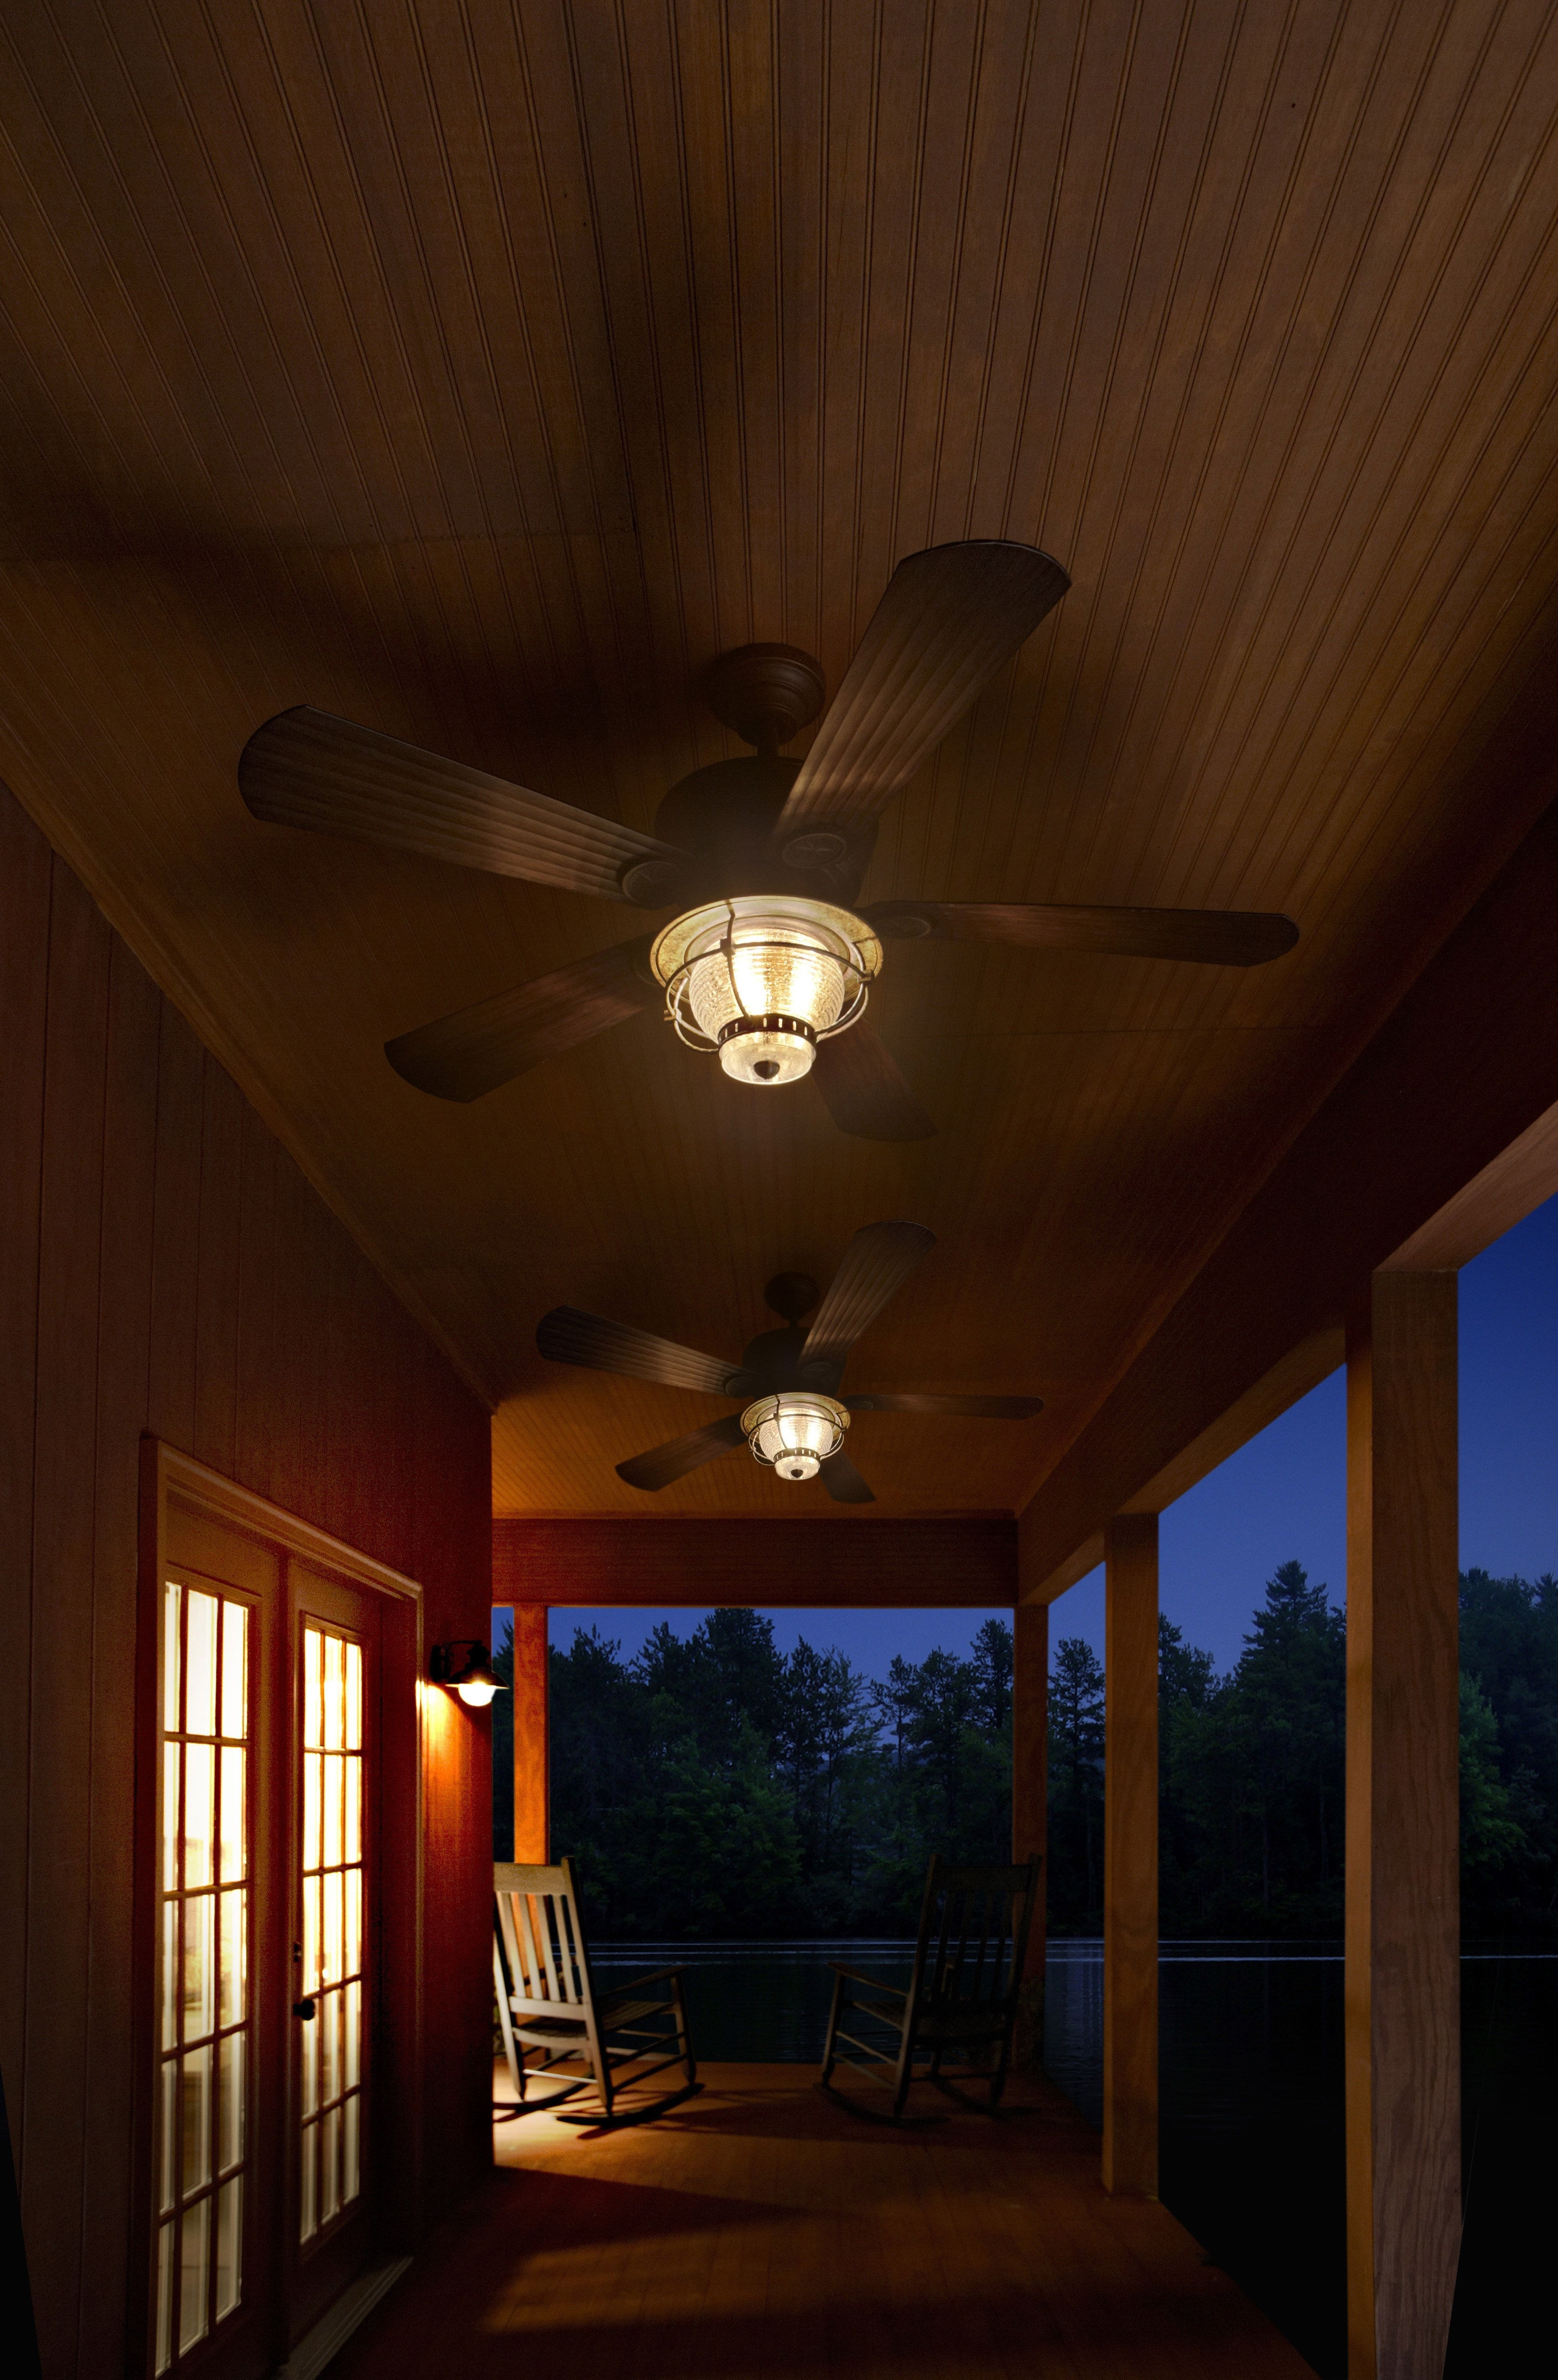 Outdoor Patio Ceiling Fans With Lights Within Famous Be Prepared For The Summer Heat With Harbor Breeze Outdoor Ceiling (View 9 of 20)